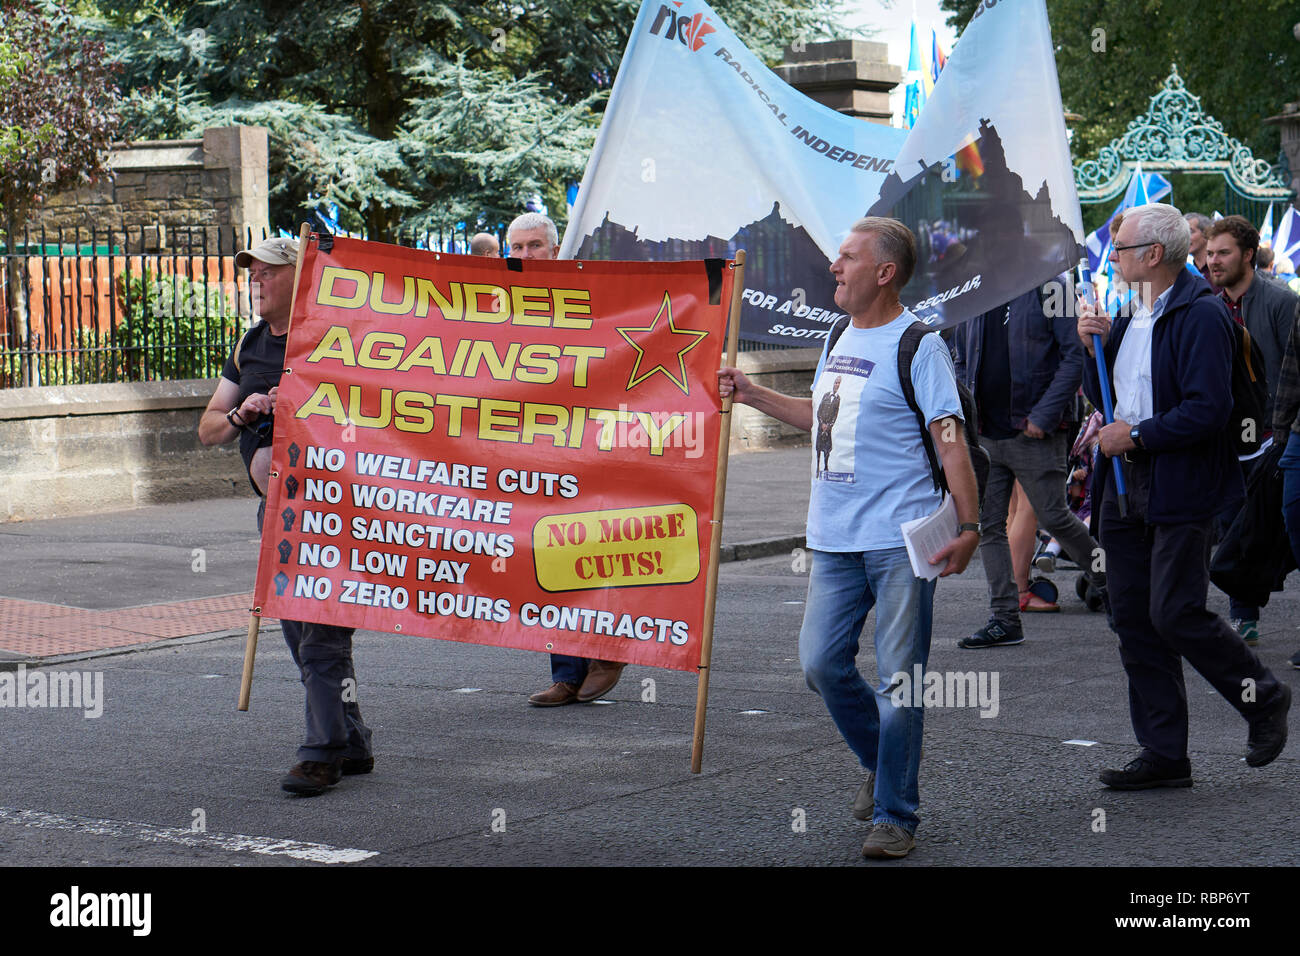 March for Scottish Independence, Dundee, Scotland. August 18th, 2018.  Dundee Against Austerity banner - Stock Image